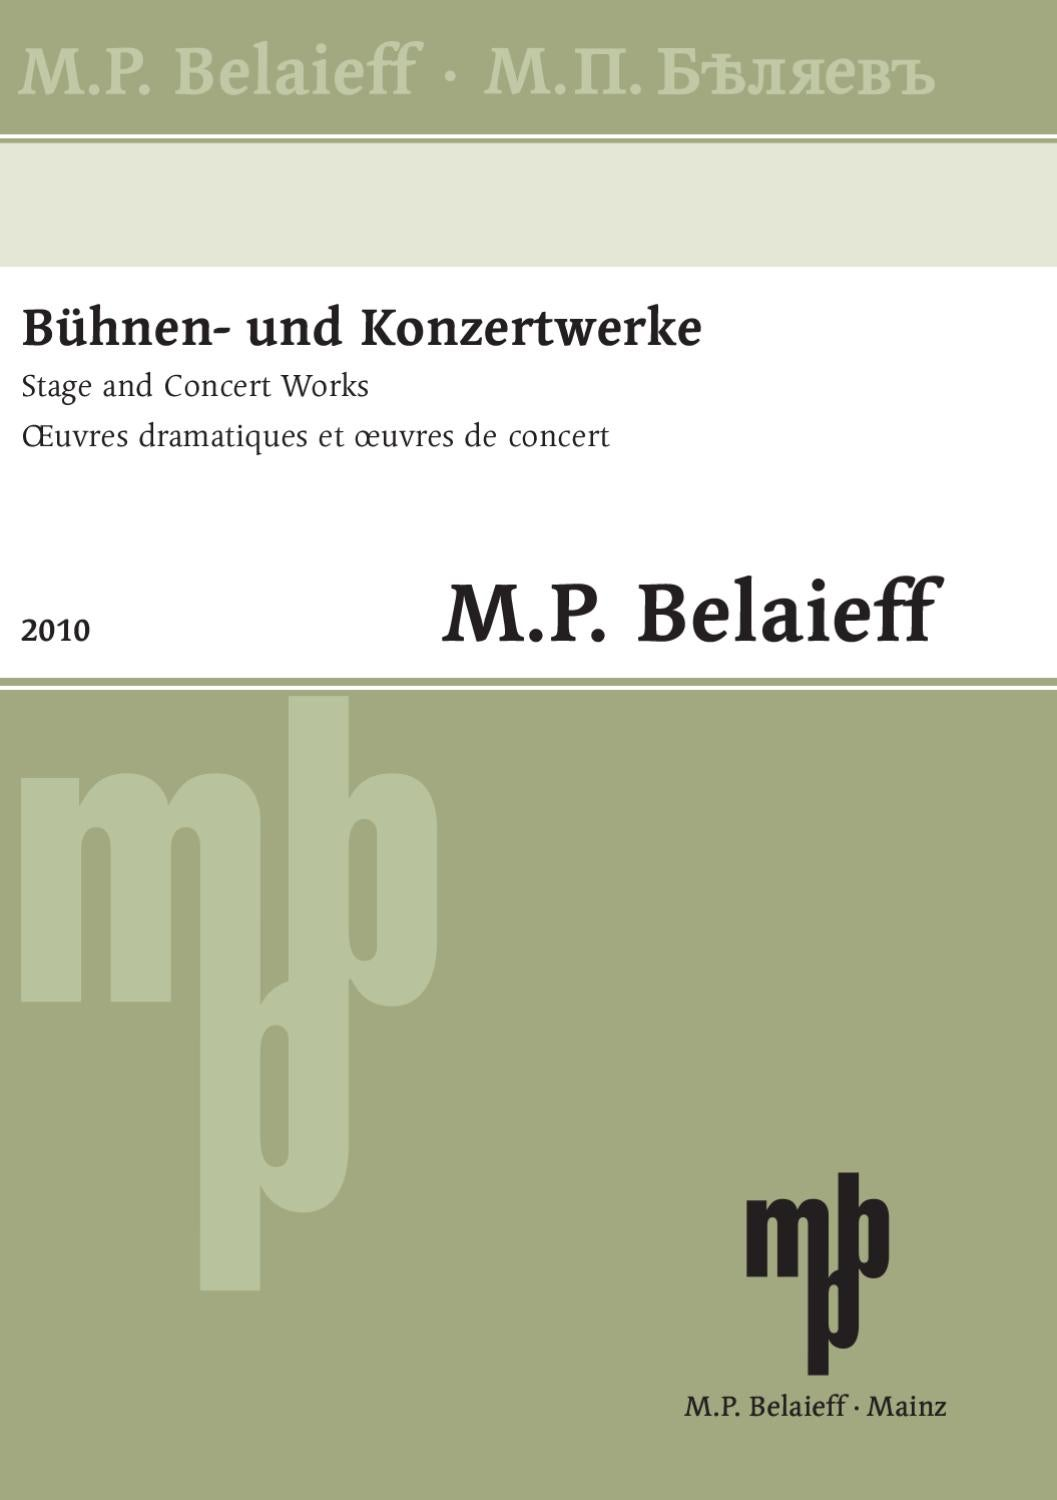 M.P. Belaieff   Stage and Concert Works by Schott Music   issuu